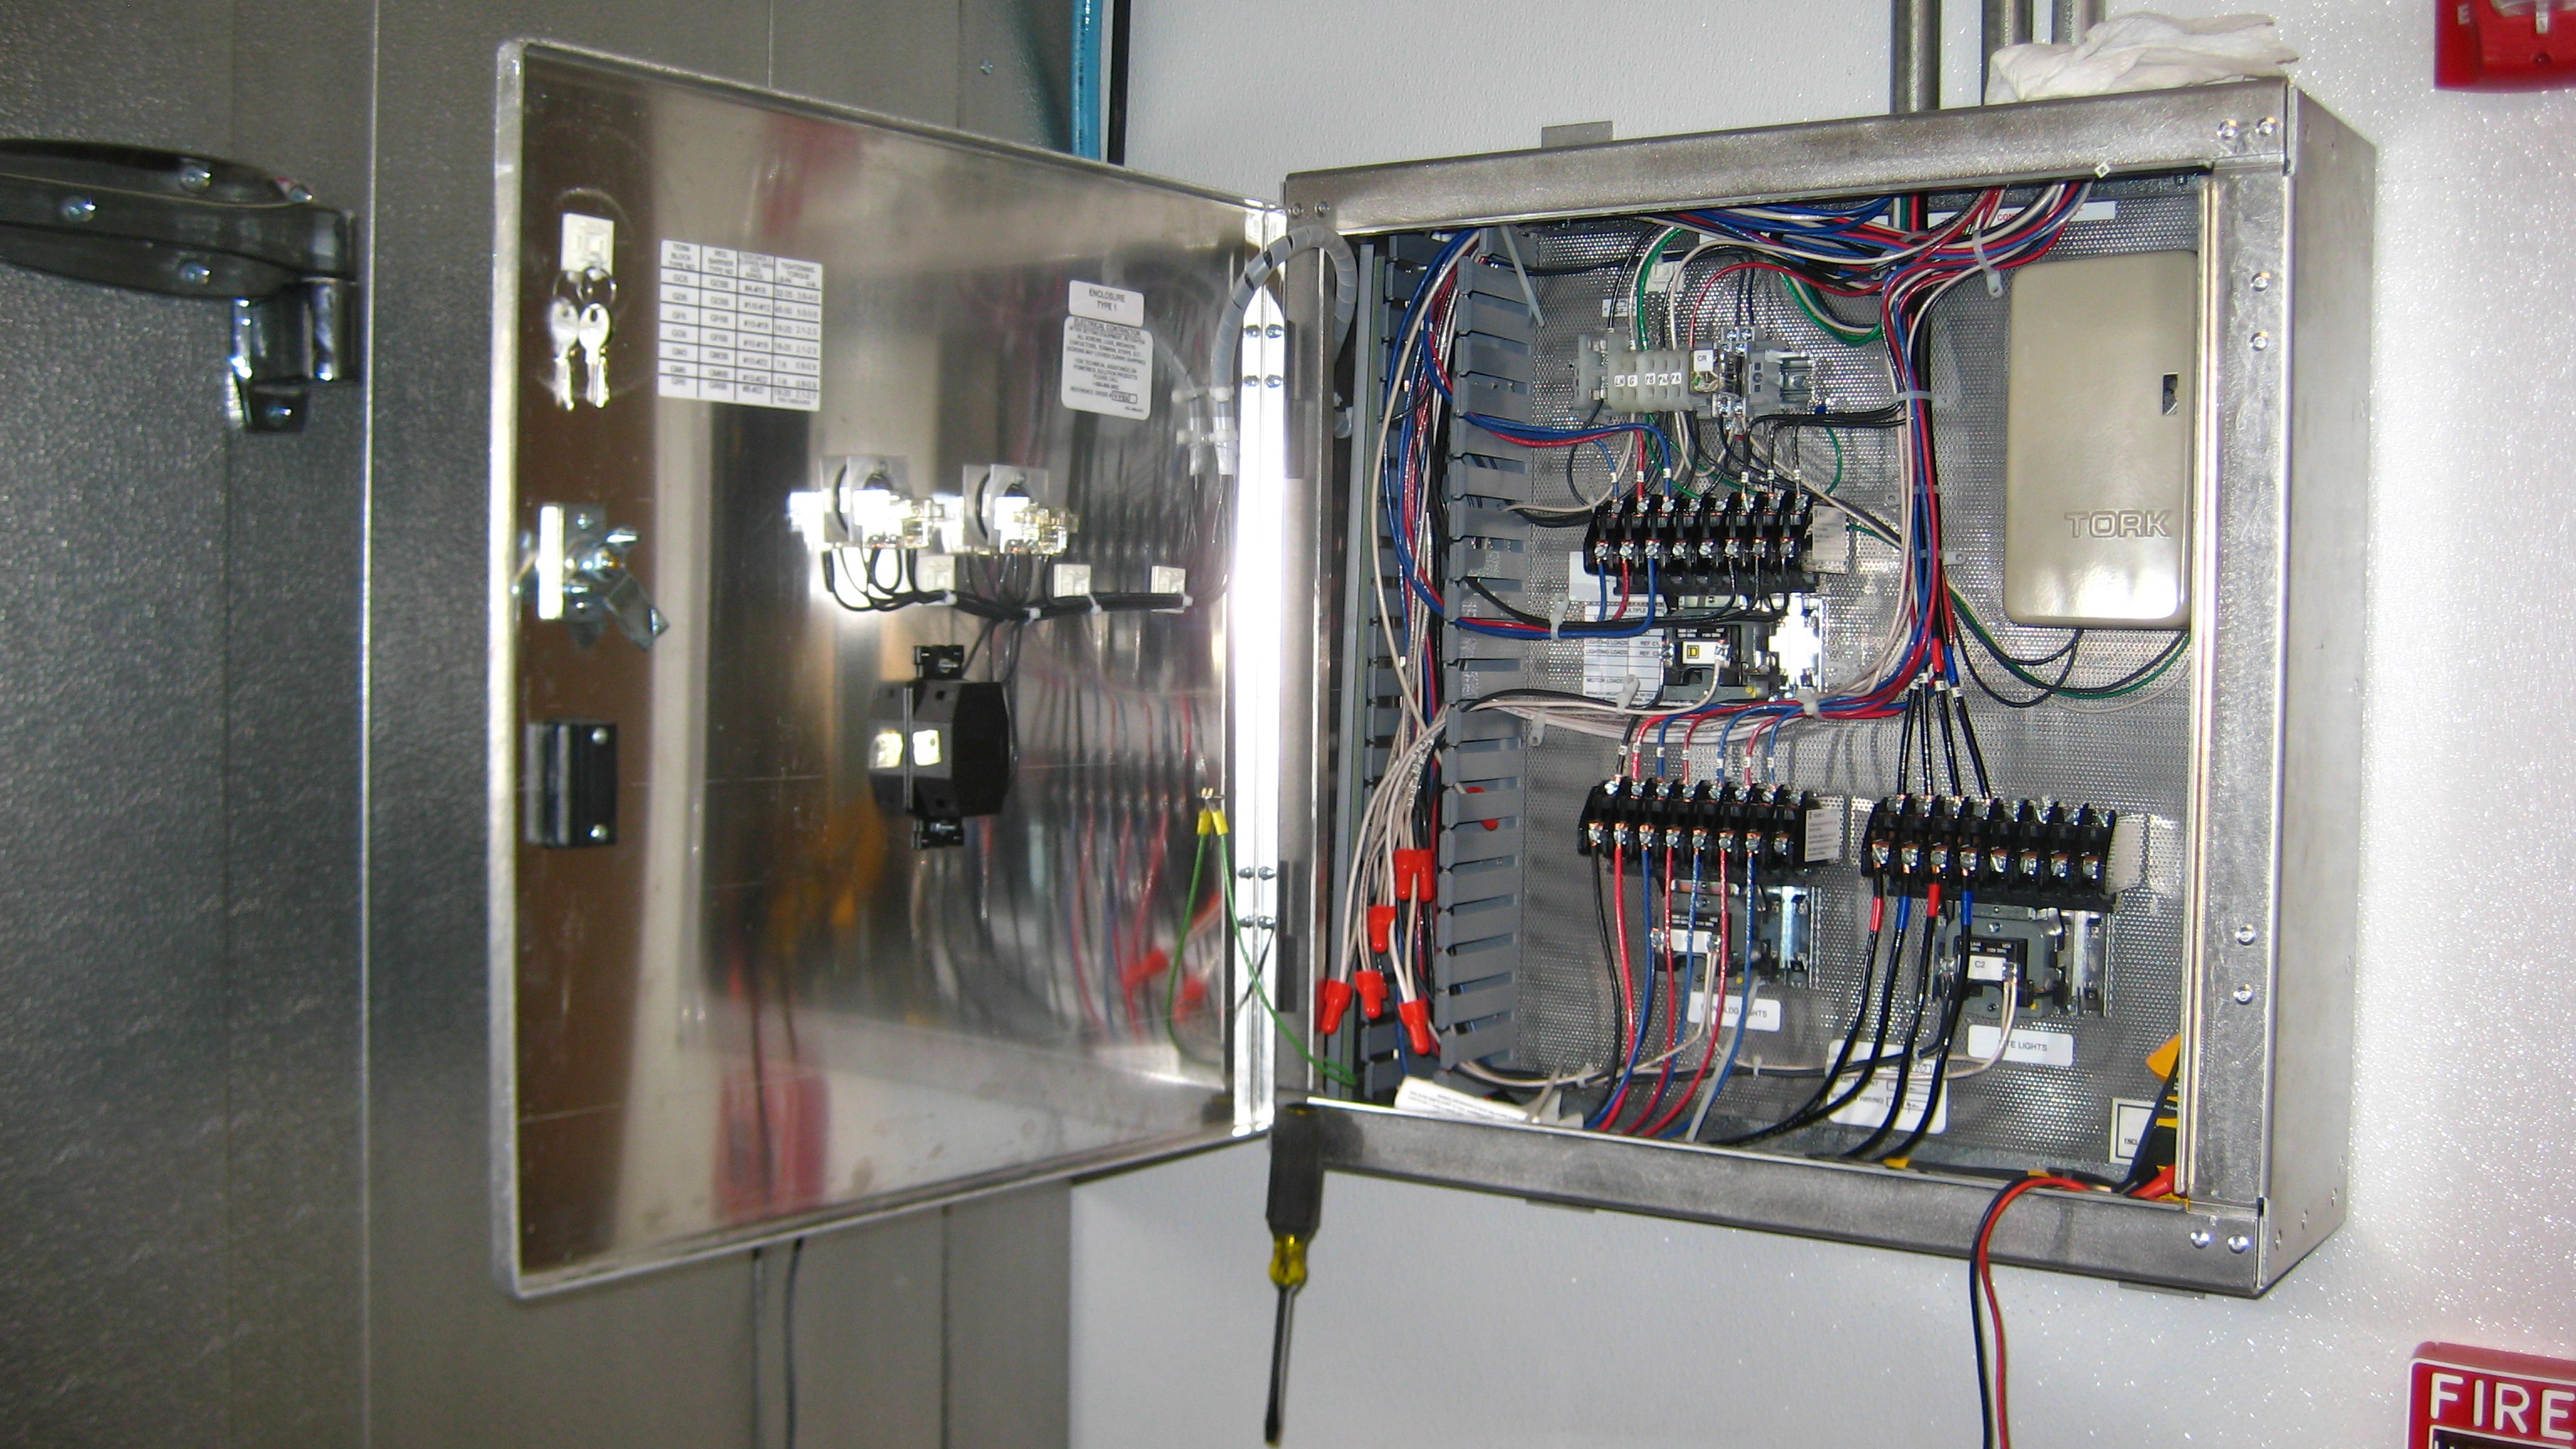 Contactor Wiring Diagram On Light Switch And Outlet Wiring Diagram